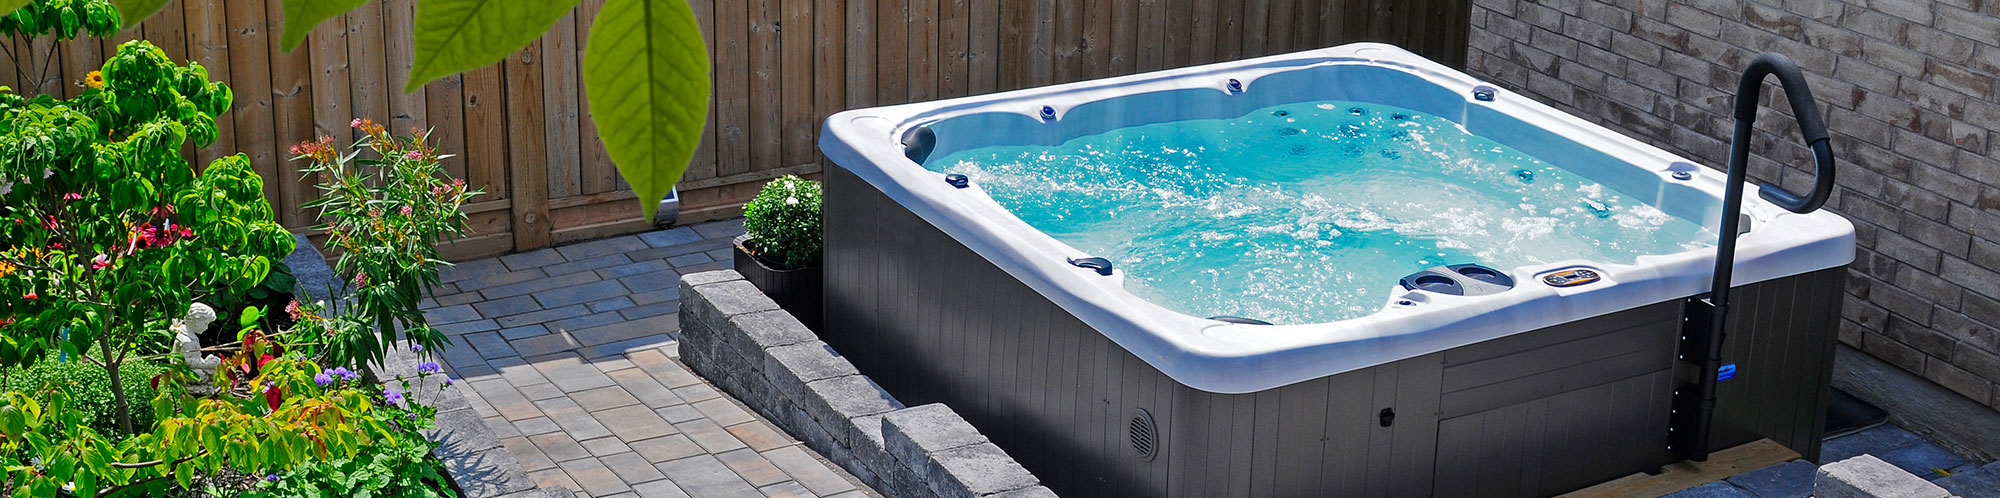 Hydropool Serenity 7000 Hot Tub in Garden